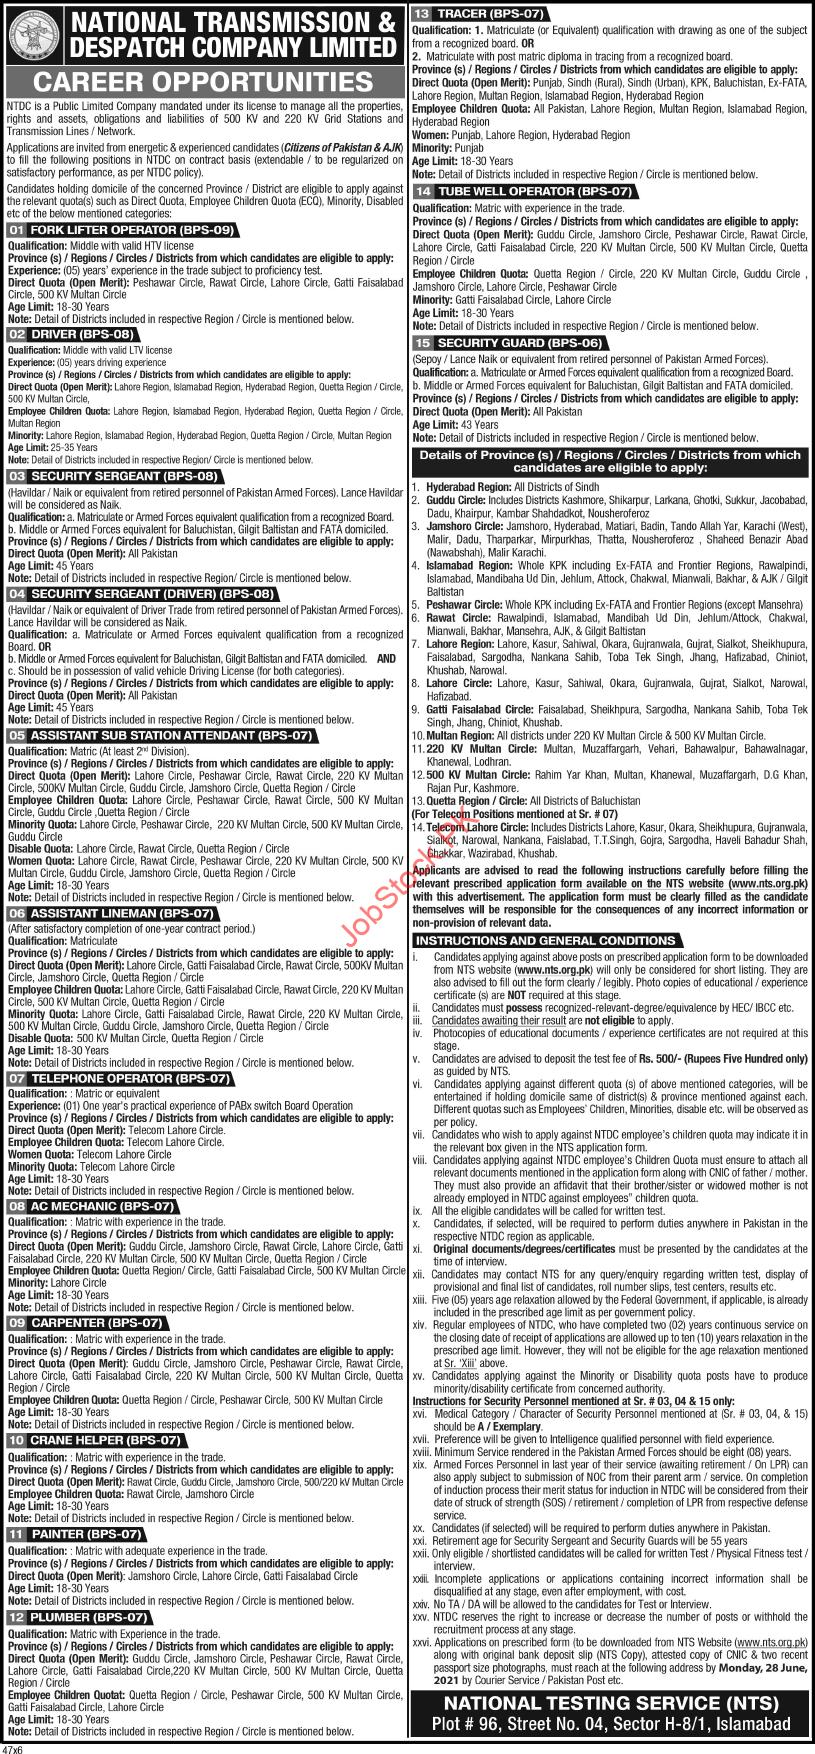 National Transmission & Despatch Company (bps 06 To Bps 09 Positions)